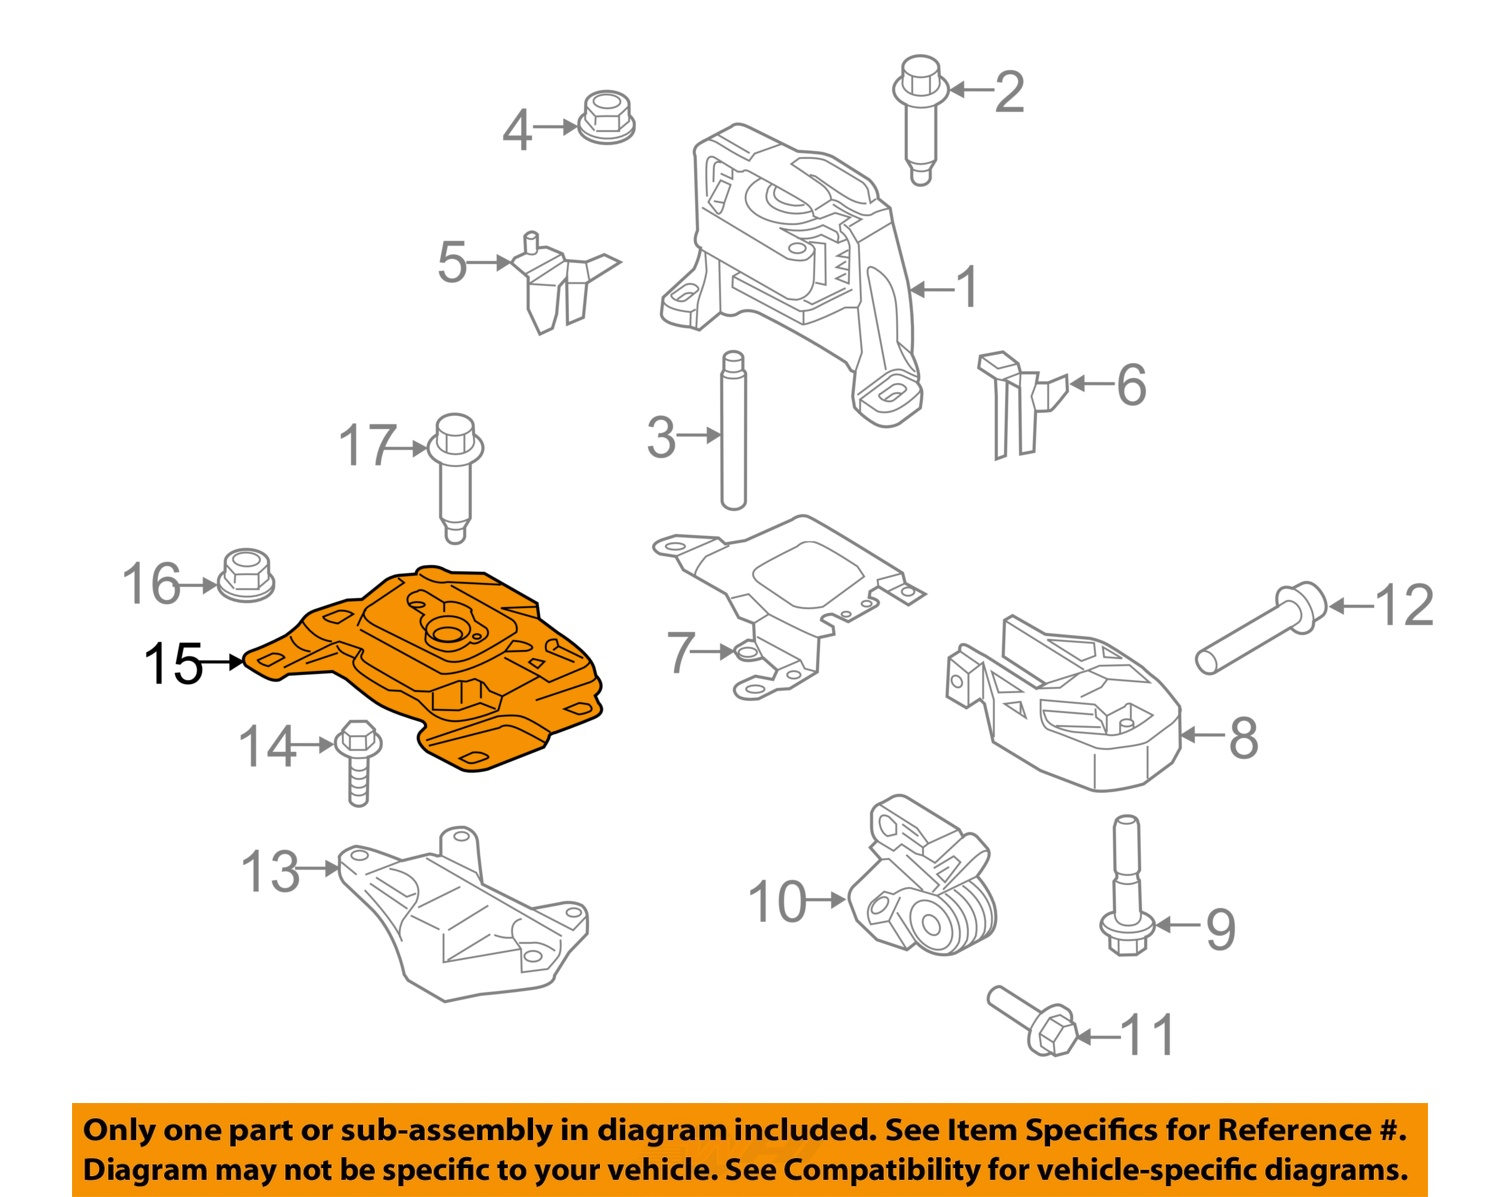 hight resolution of  15 on diagram only genuine oe factory original item